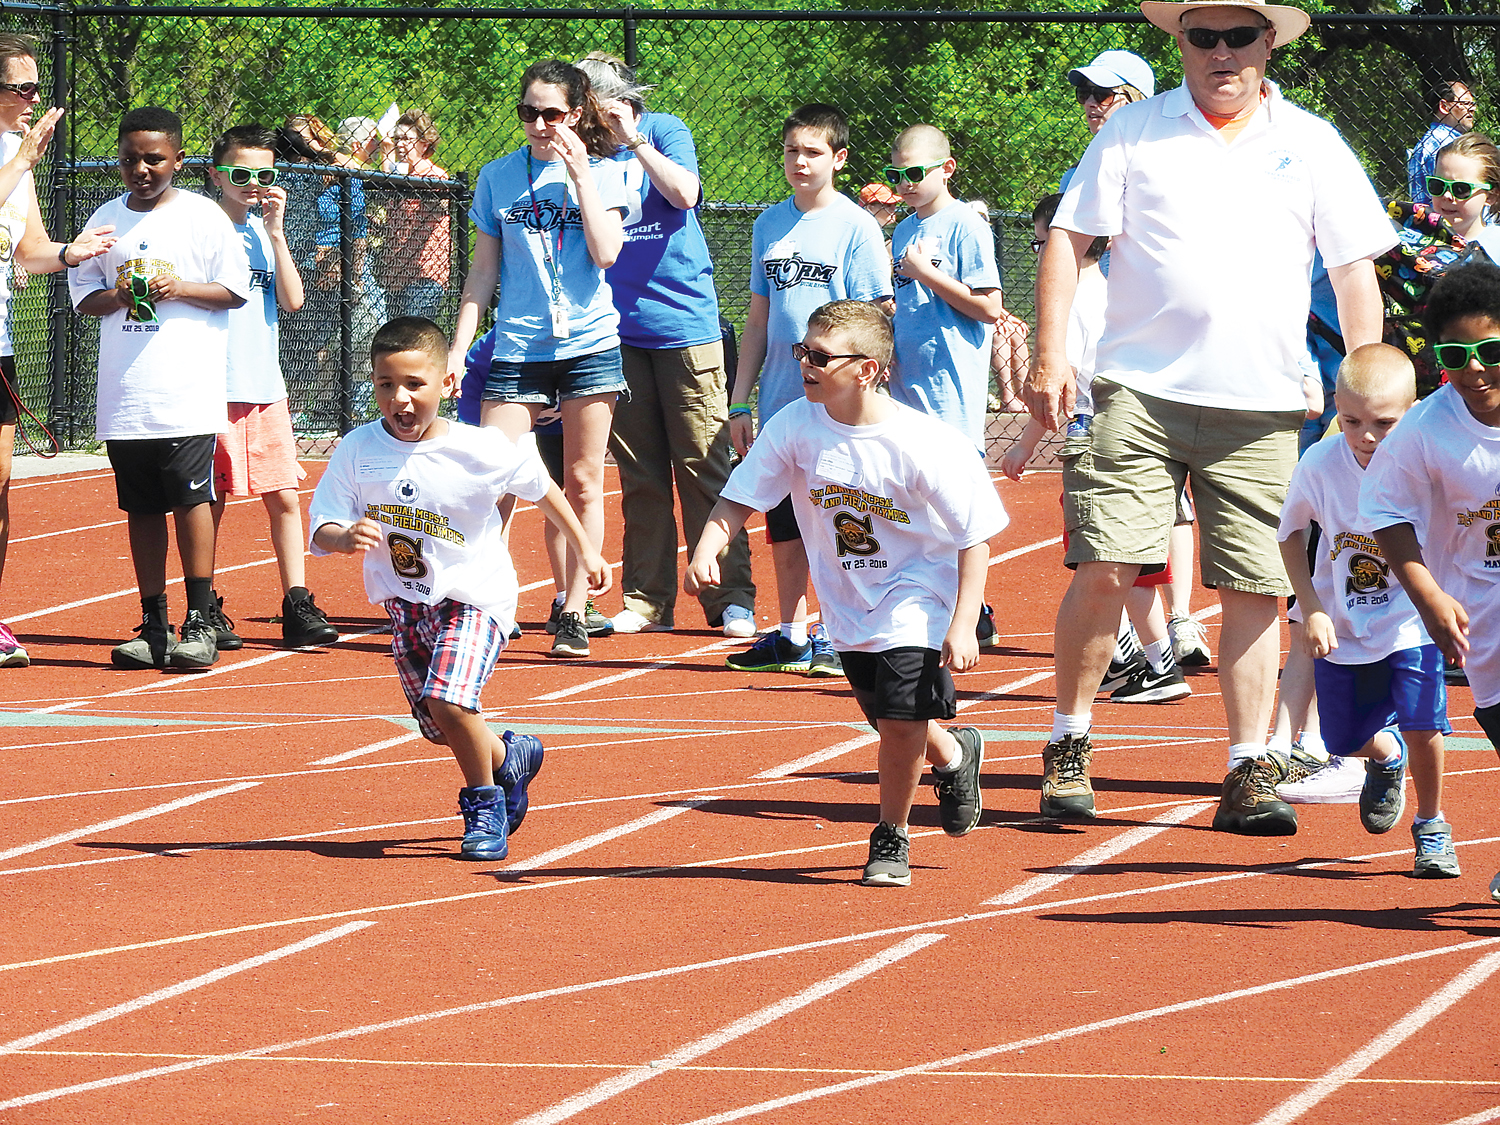 Spencerport athletes participating in 50M dash and various Youth Skills Station events.